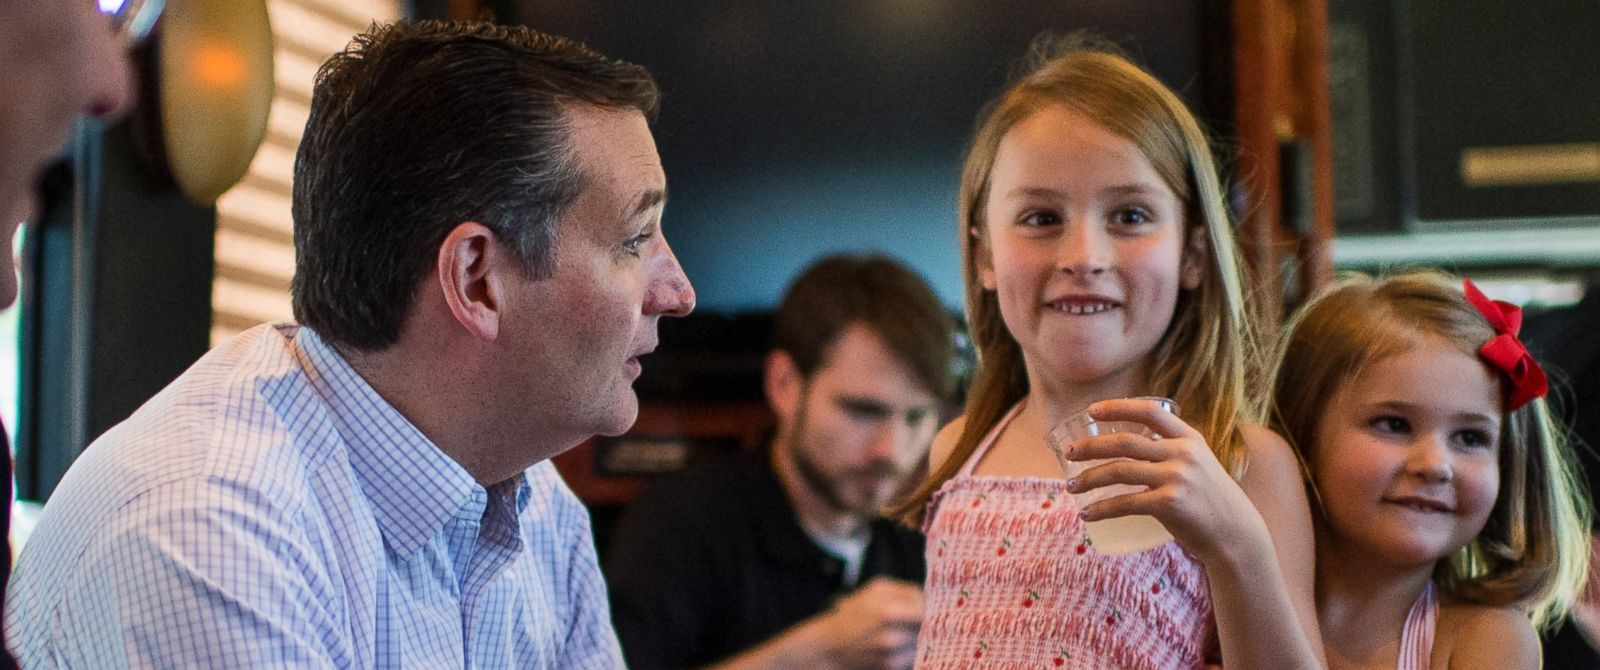 PHOTO: Sen. Ted Cruz (R-TX) spends a few moments with his daughters Caroline, center, and Catherine, right, before the start of the Cruz bus tour rally on Aug. 8, 2015.